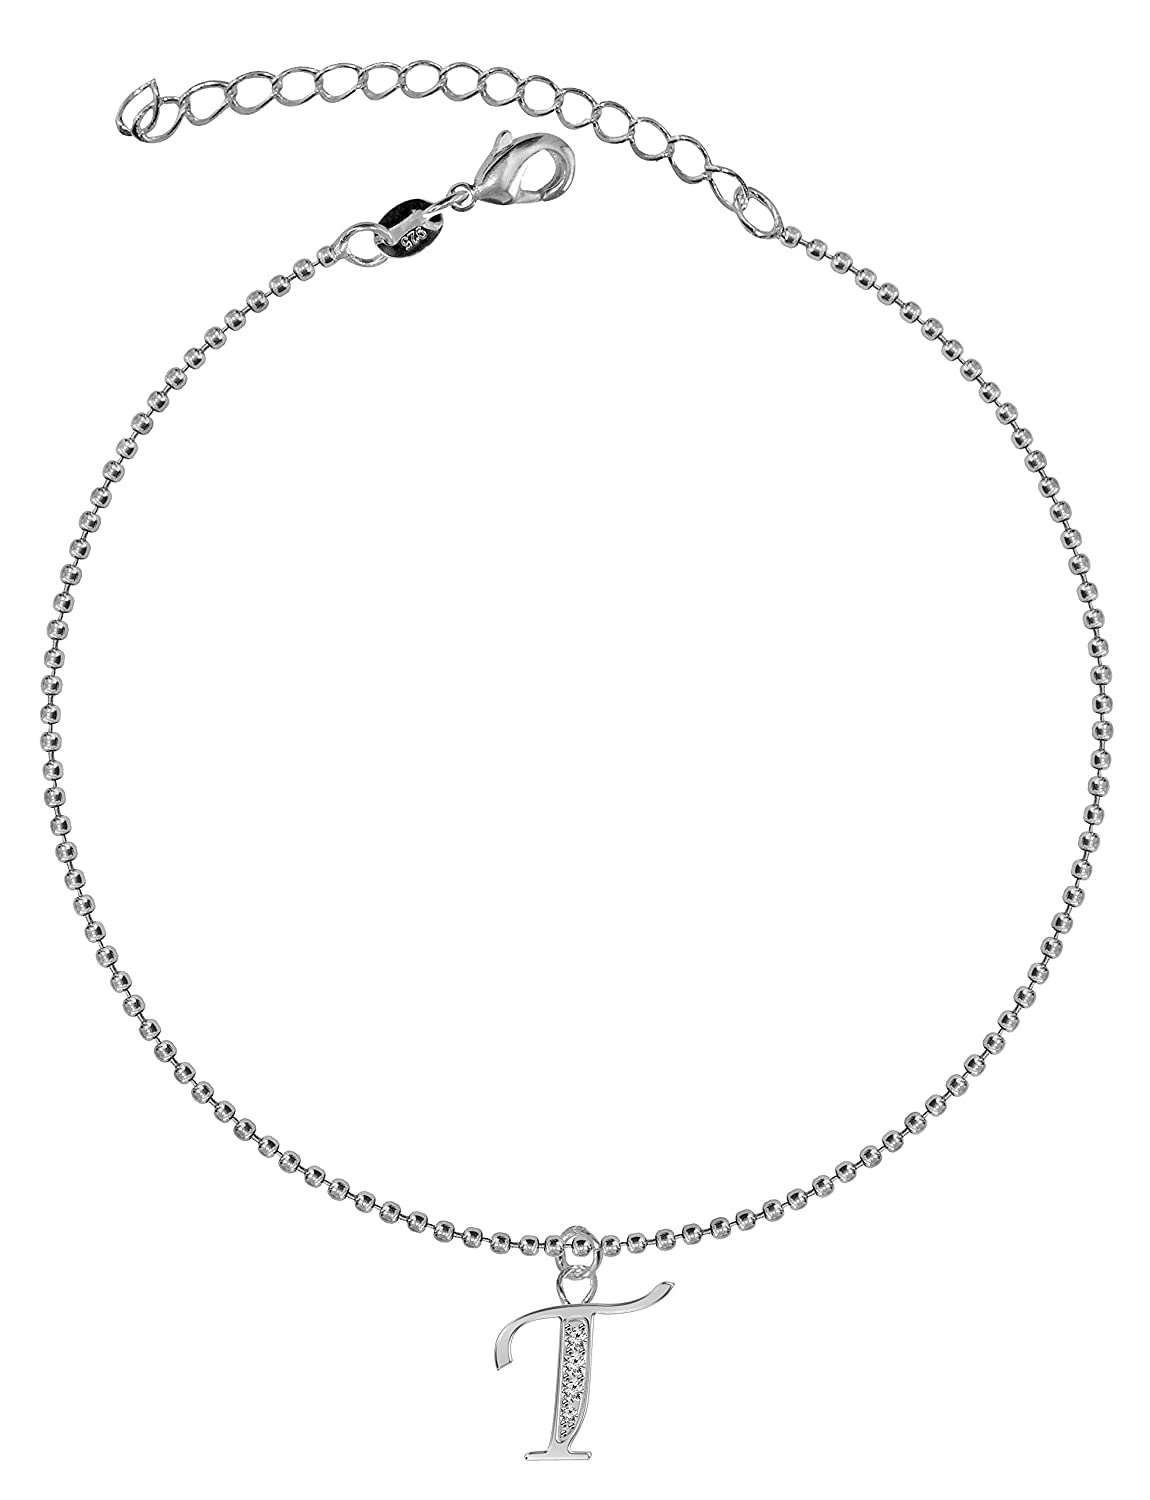 Dangle Anklet–argents-facile Letter To Wear, Suitable for Everyday Wear–We use the best quality CZ cristaux- Link 21cm with 5cm extension–Packed in a lovely velvet pouchette avantgarde PENANK001-A-CL